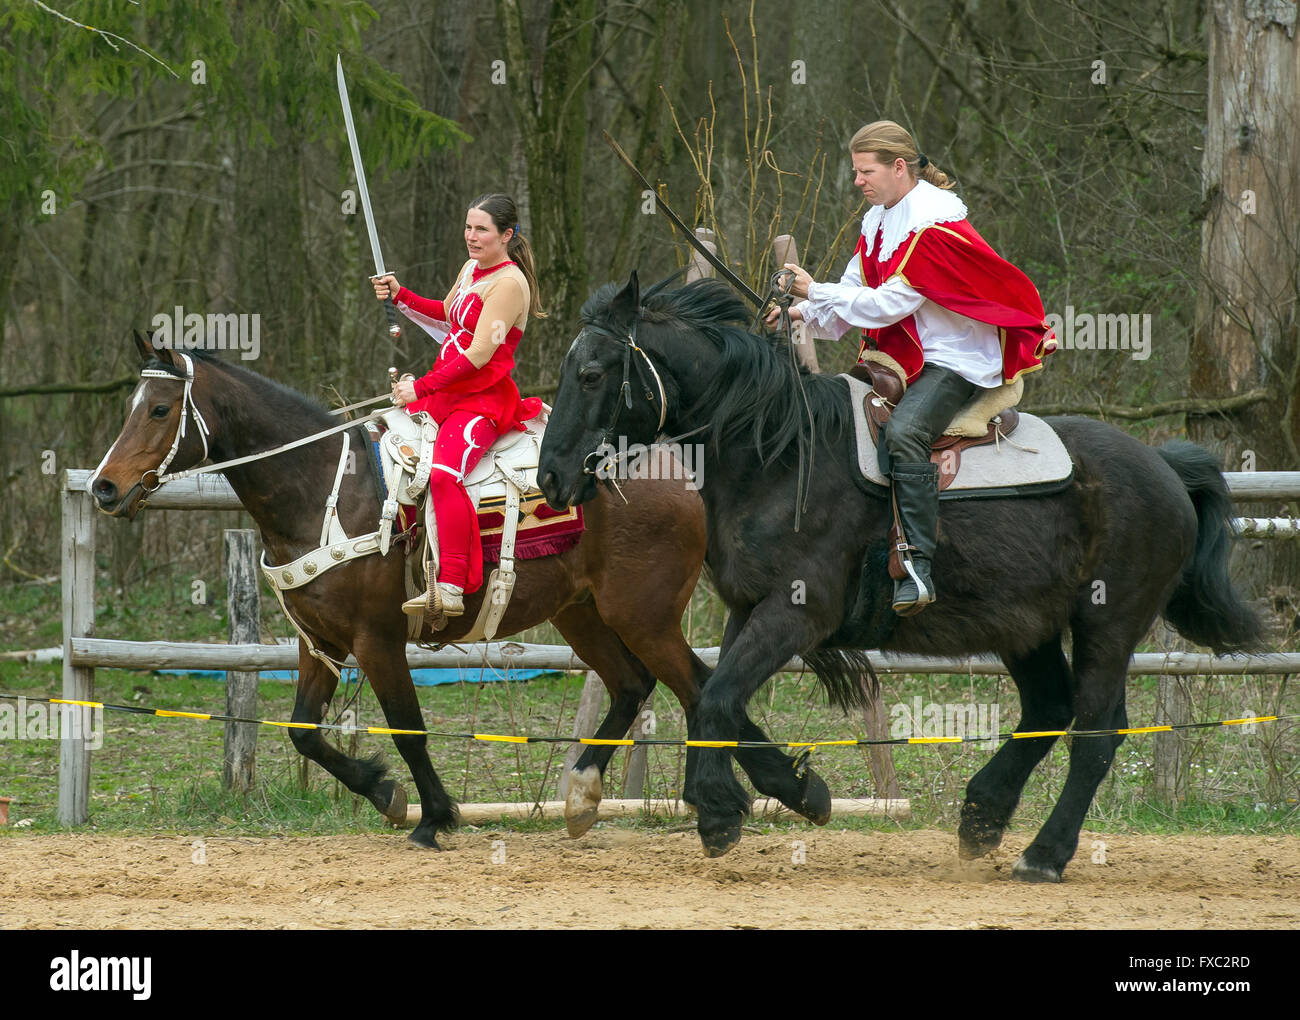 Muencheberg, Germany. 04th Apr, 2016. Stunt riders Christian Scholle-Prestin and his life partner Daja Ziefuss ride - Stock Image